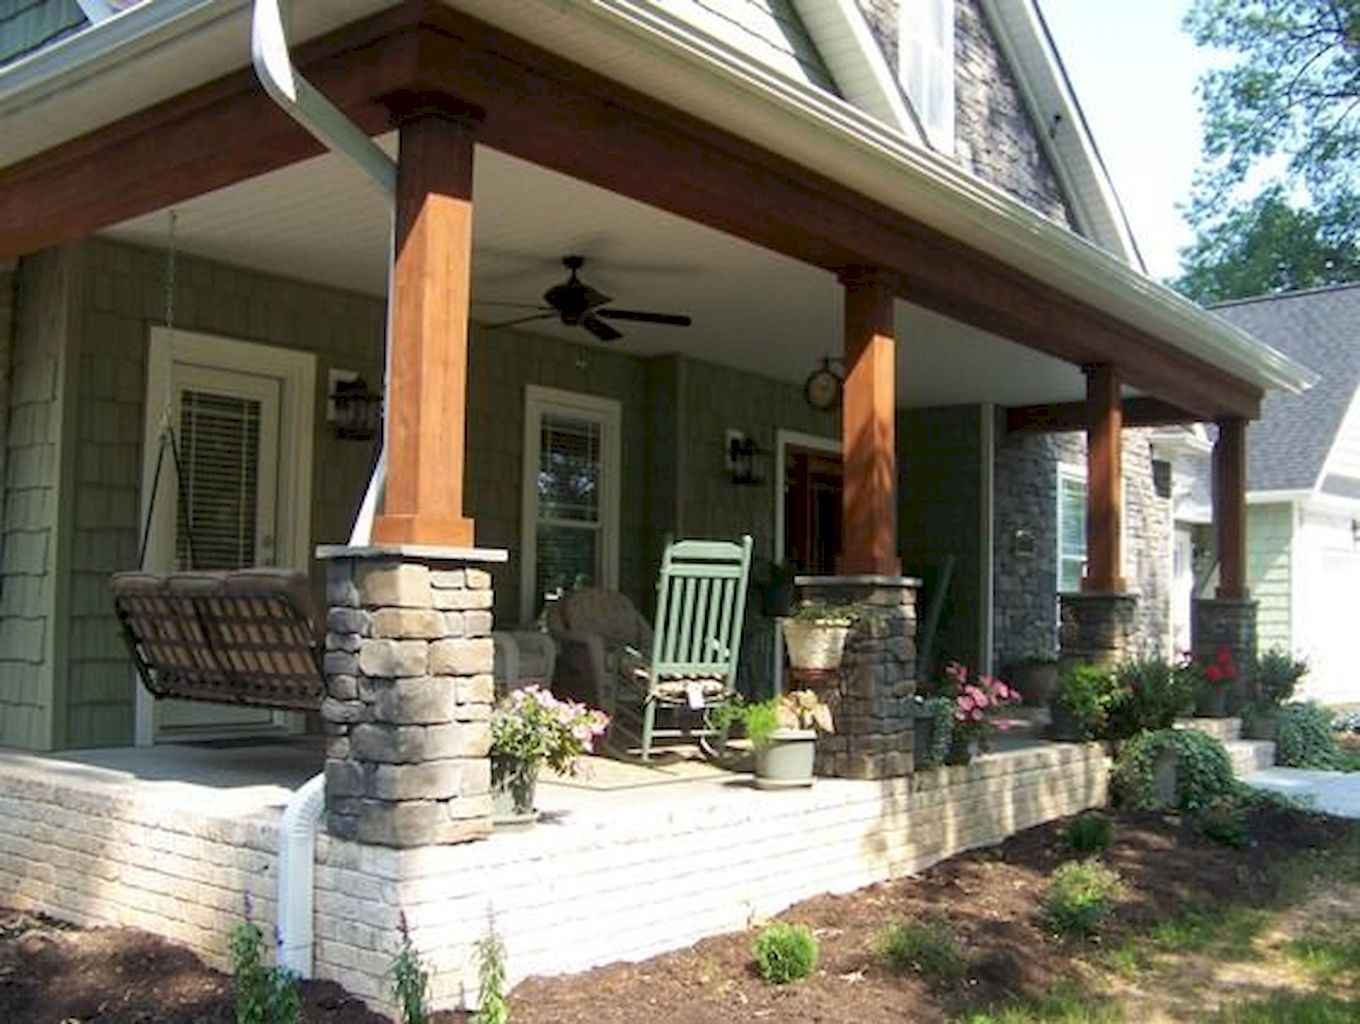 85 beautiful wooden and stone front porch ideas decoradeas